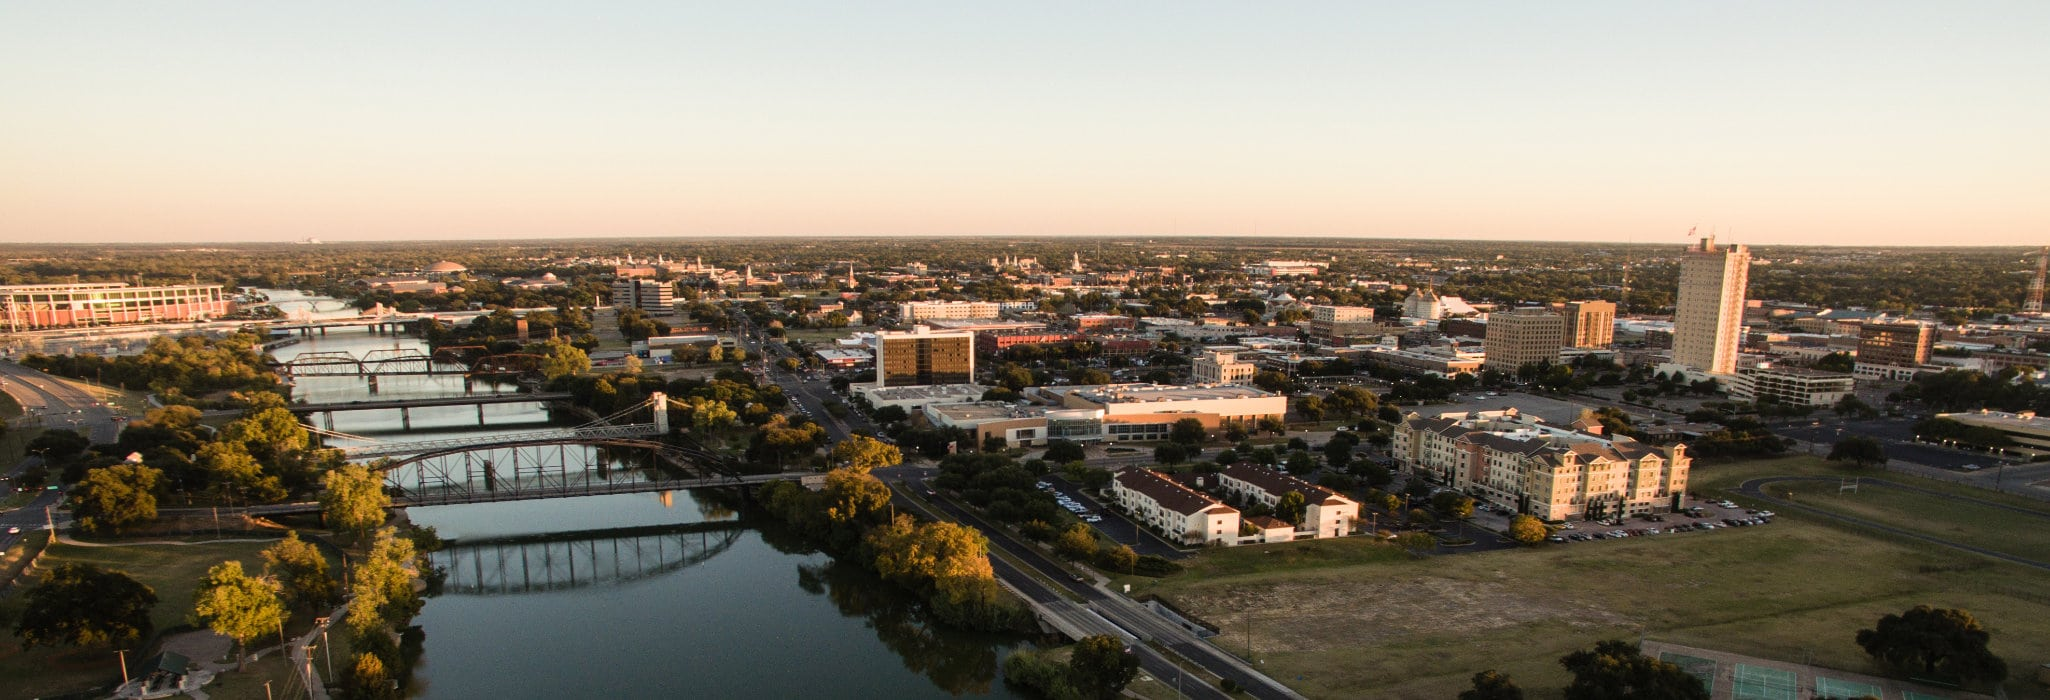 Sunset come to Waco Texas and the downtown river front